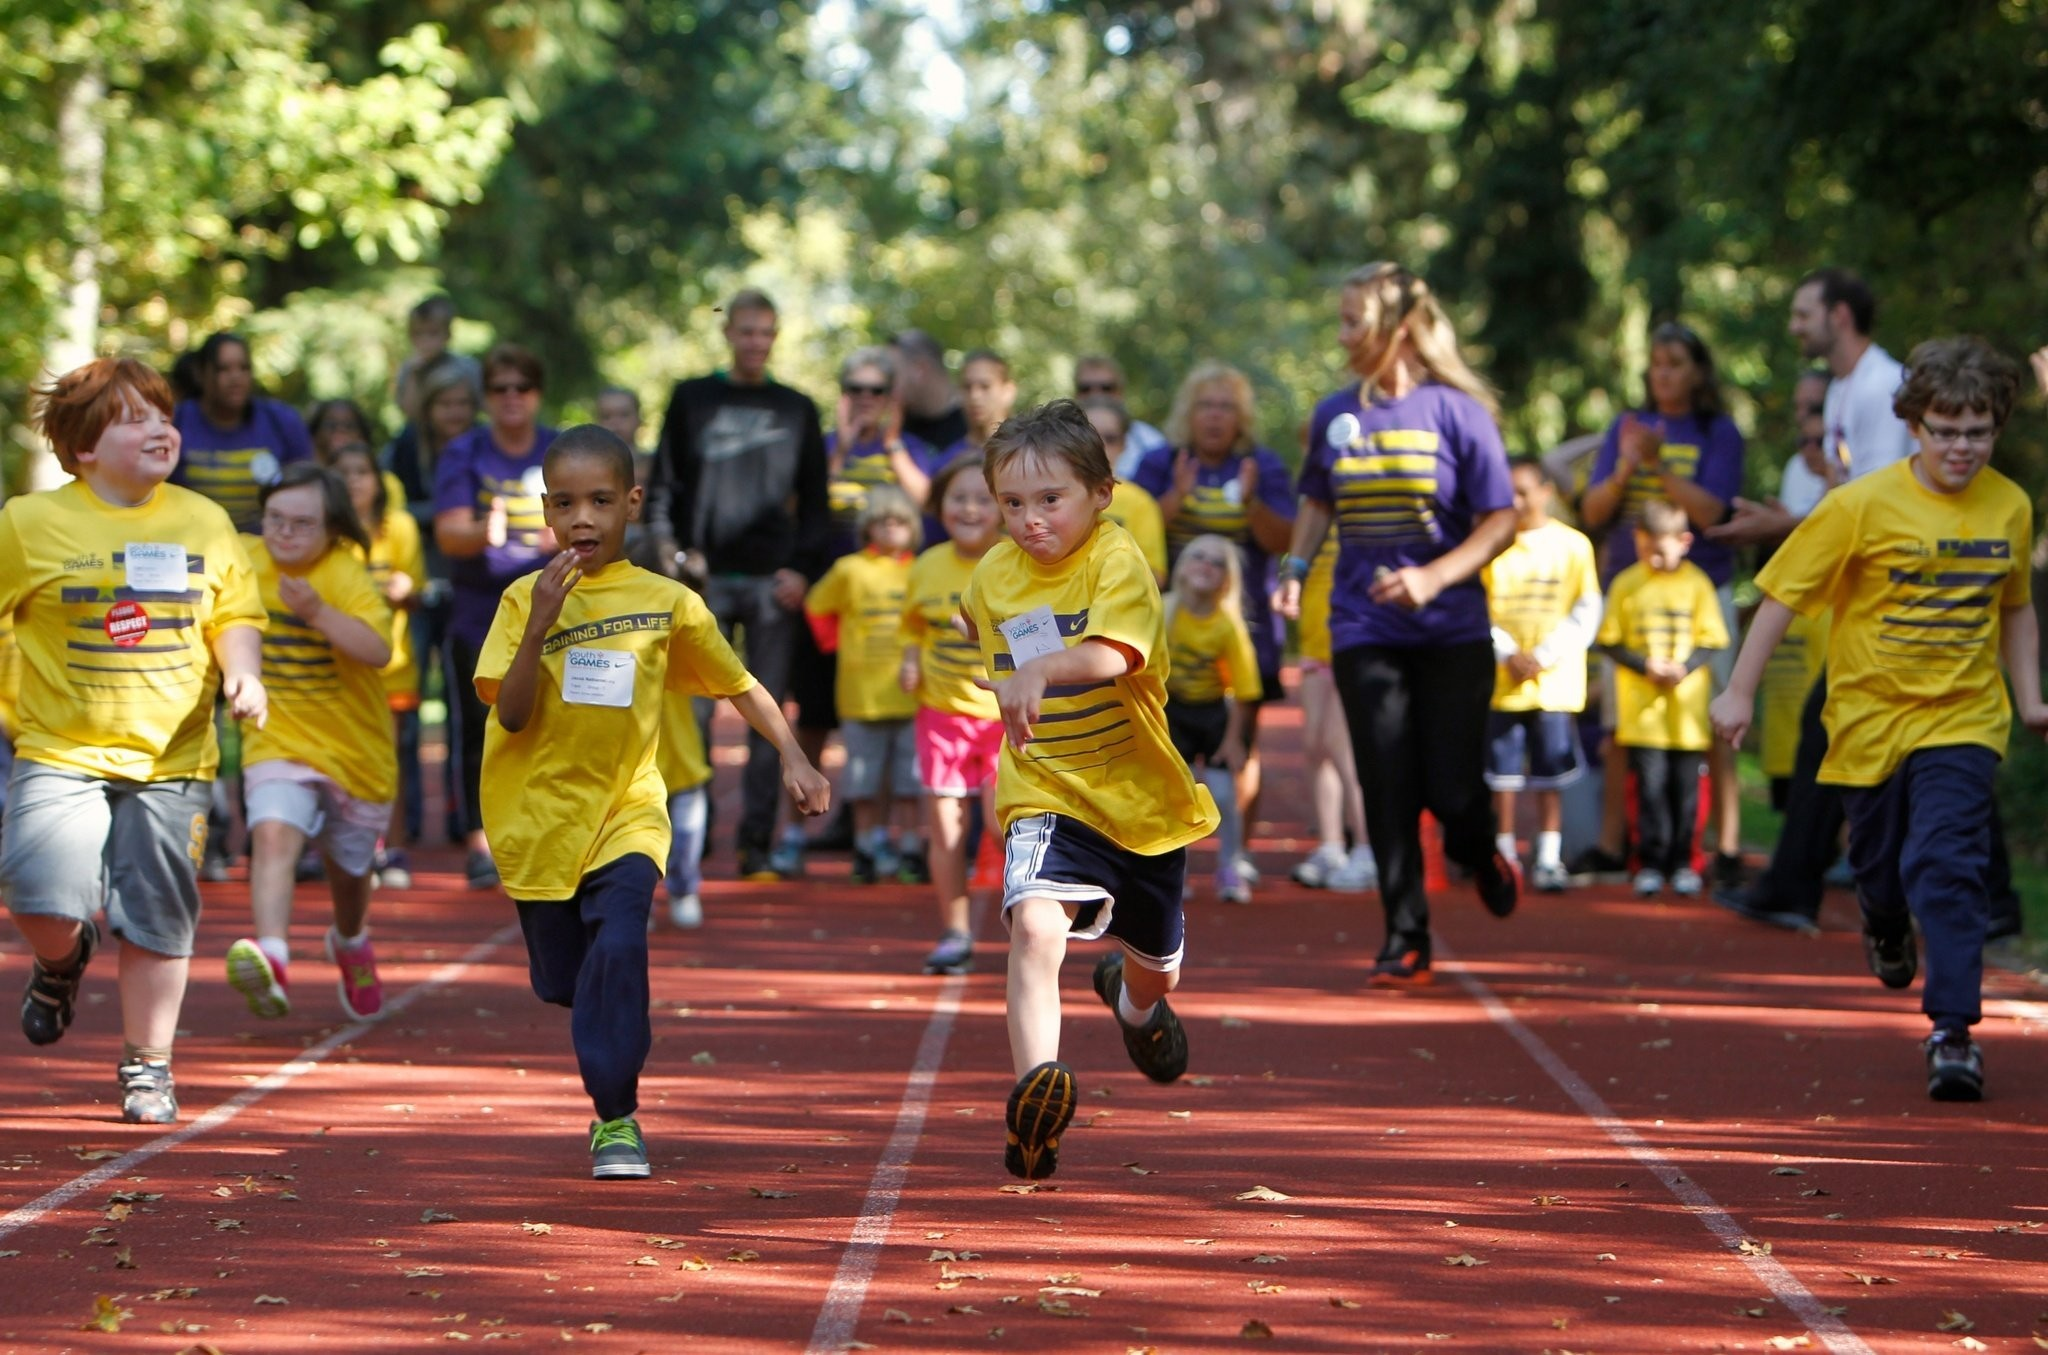 Seven-year-old Thomas Gibson, who has Down syndrome, takes part in a running race during Oregon Special Olympics' 2012 Youth Games. Newberg hosts the state Summer Games on Sunday.